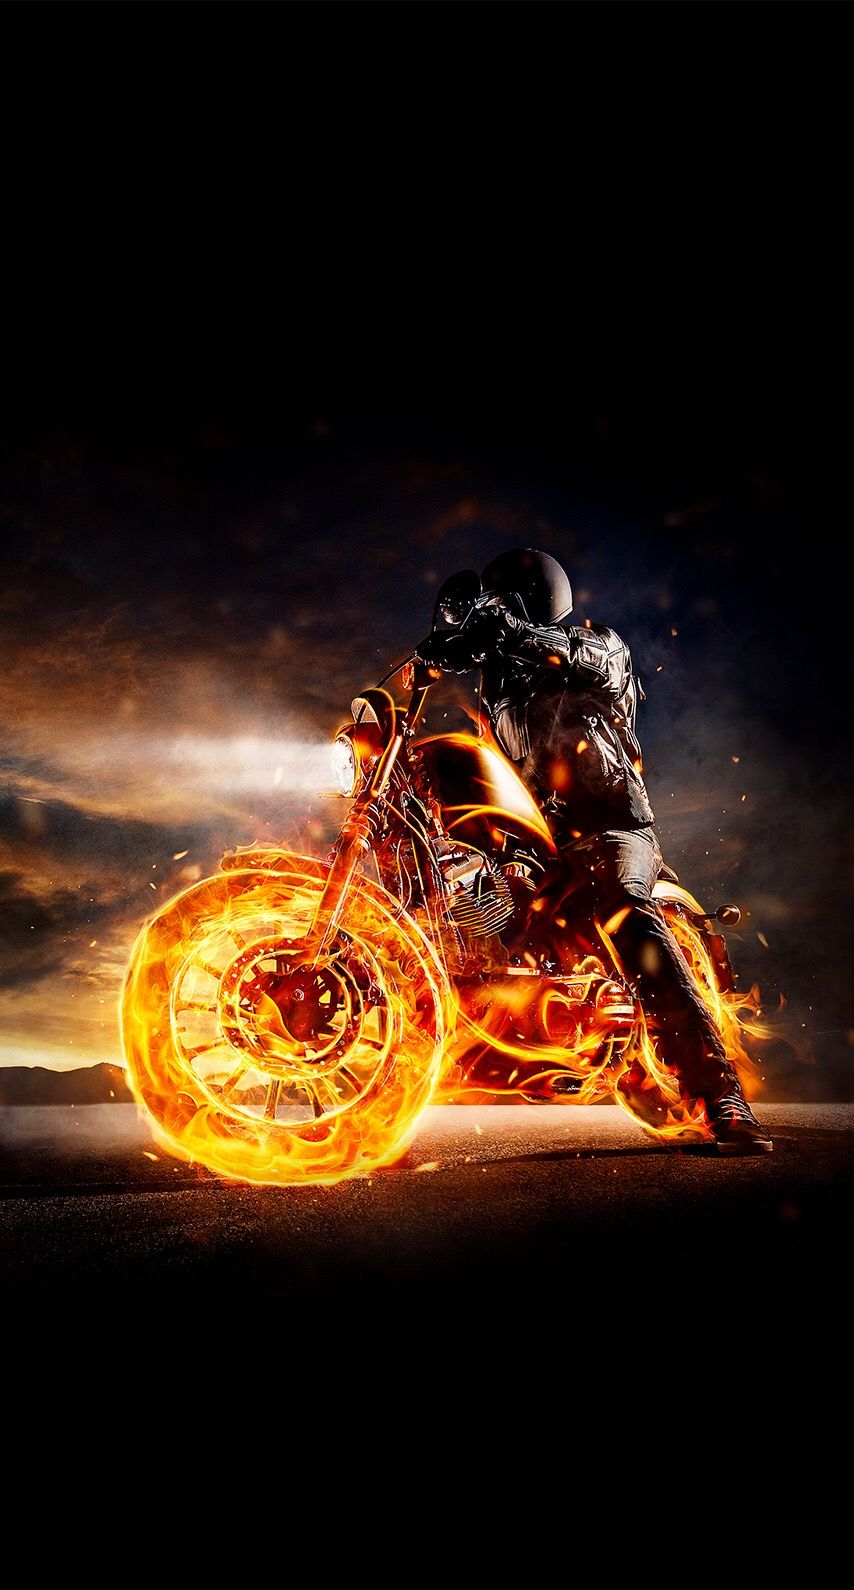 Ghost rider wallpaper hd iphone android Ghost rider